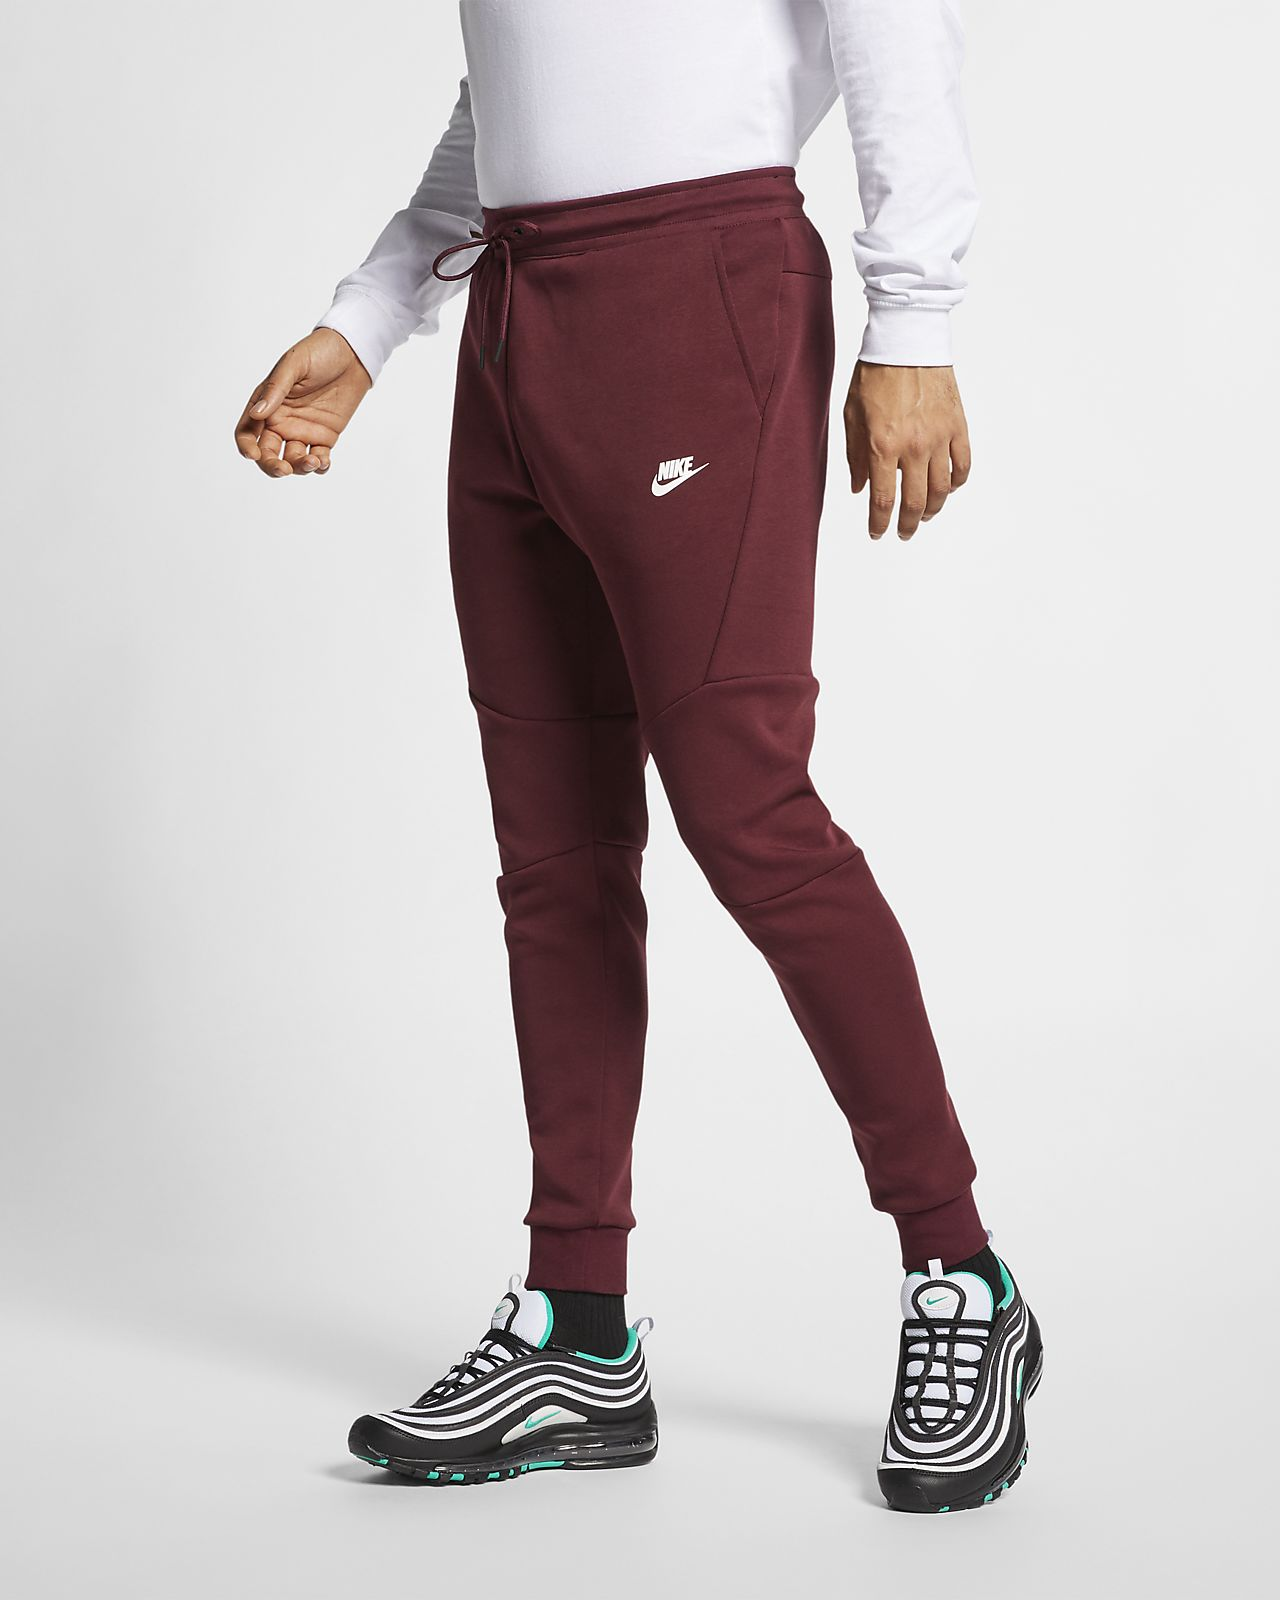 628f86a6aadc3 Nike Sportswear Tech Fleece Men's Joggers. Nike.com NZ